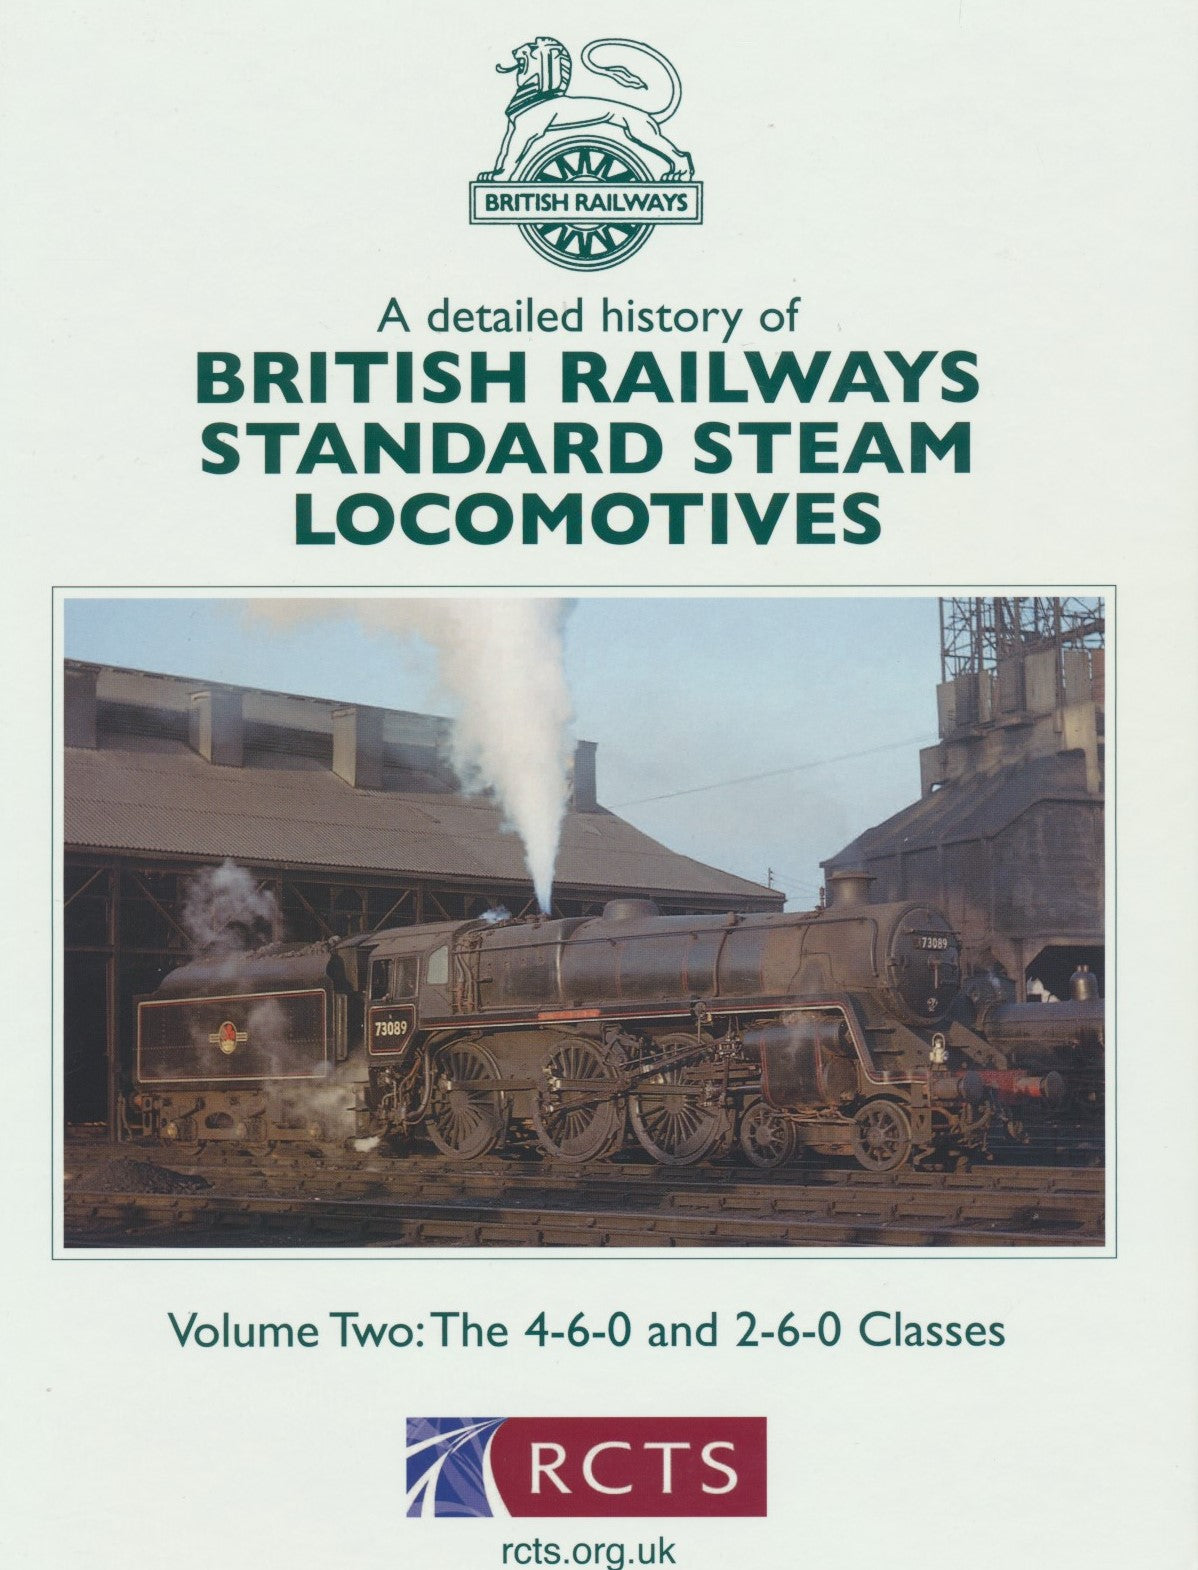 SECONDHAND A Detailed History of British Railways Standard Steam Locomotives - Volume 2: The 4-6-0 and 2-6-0 Classes